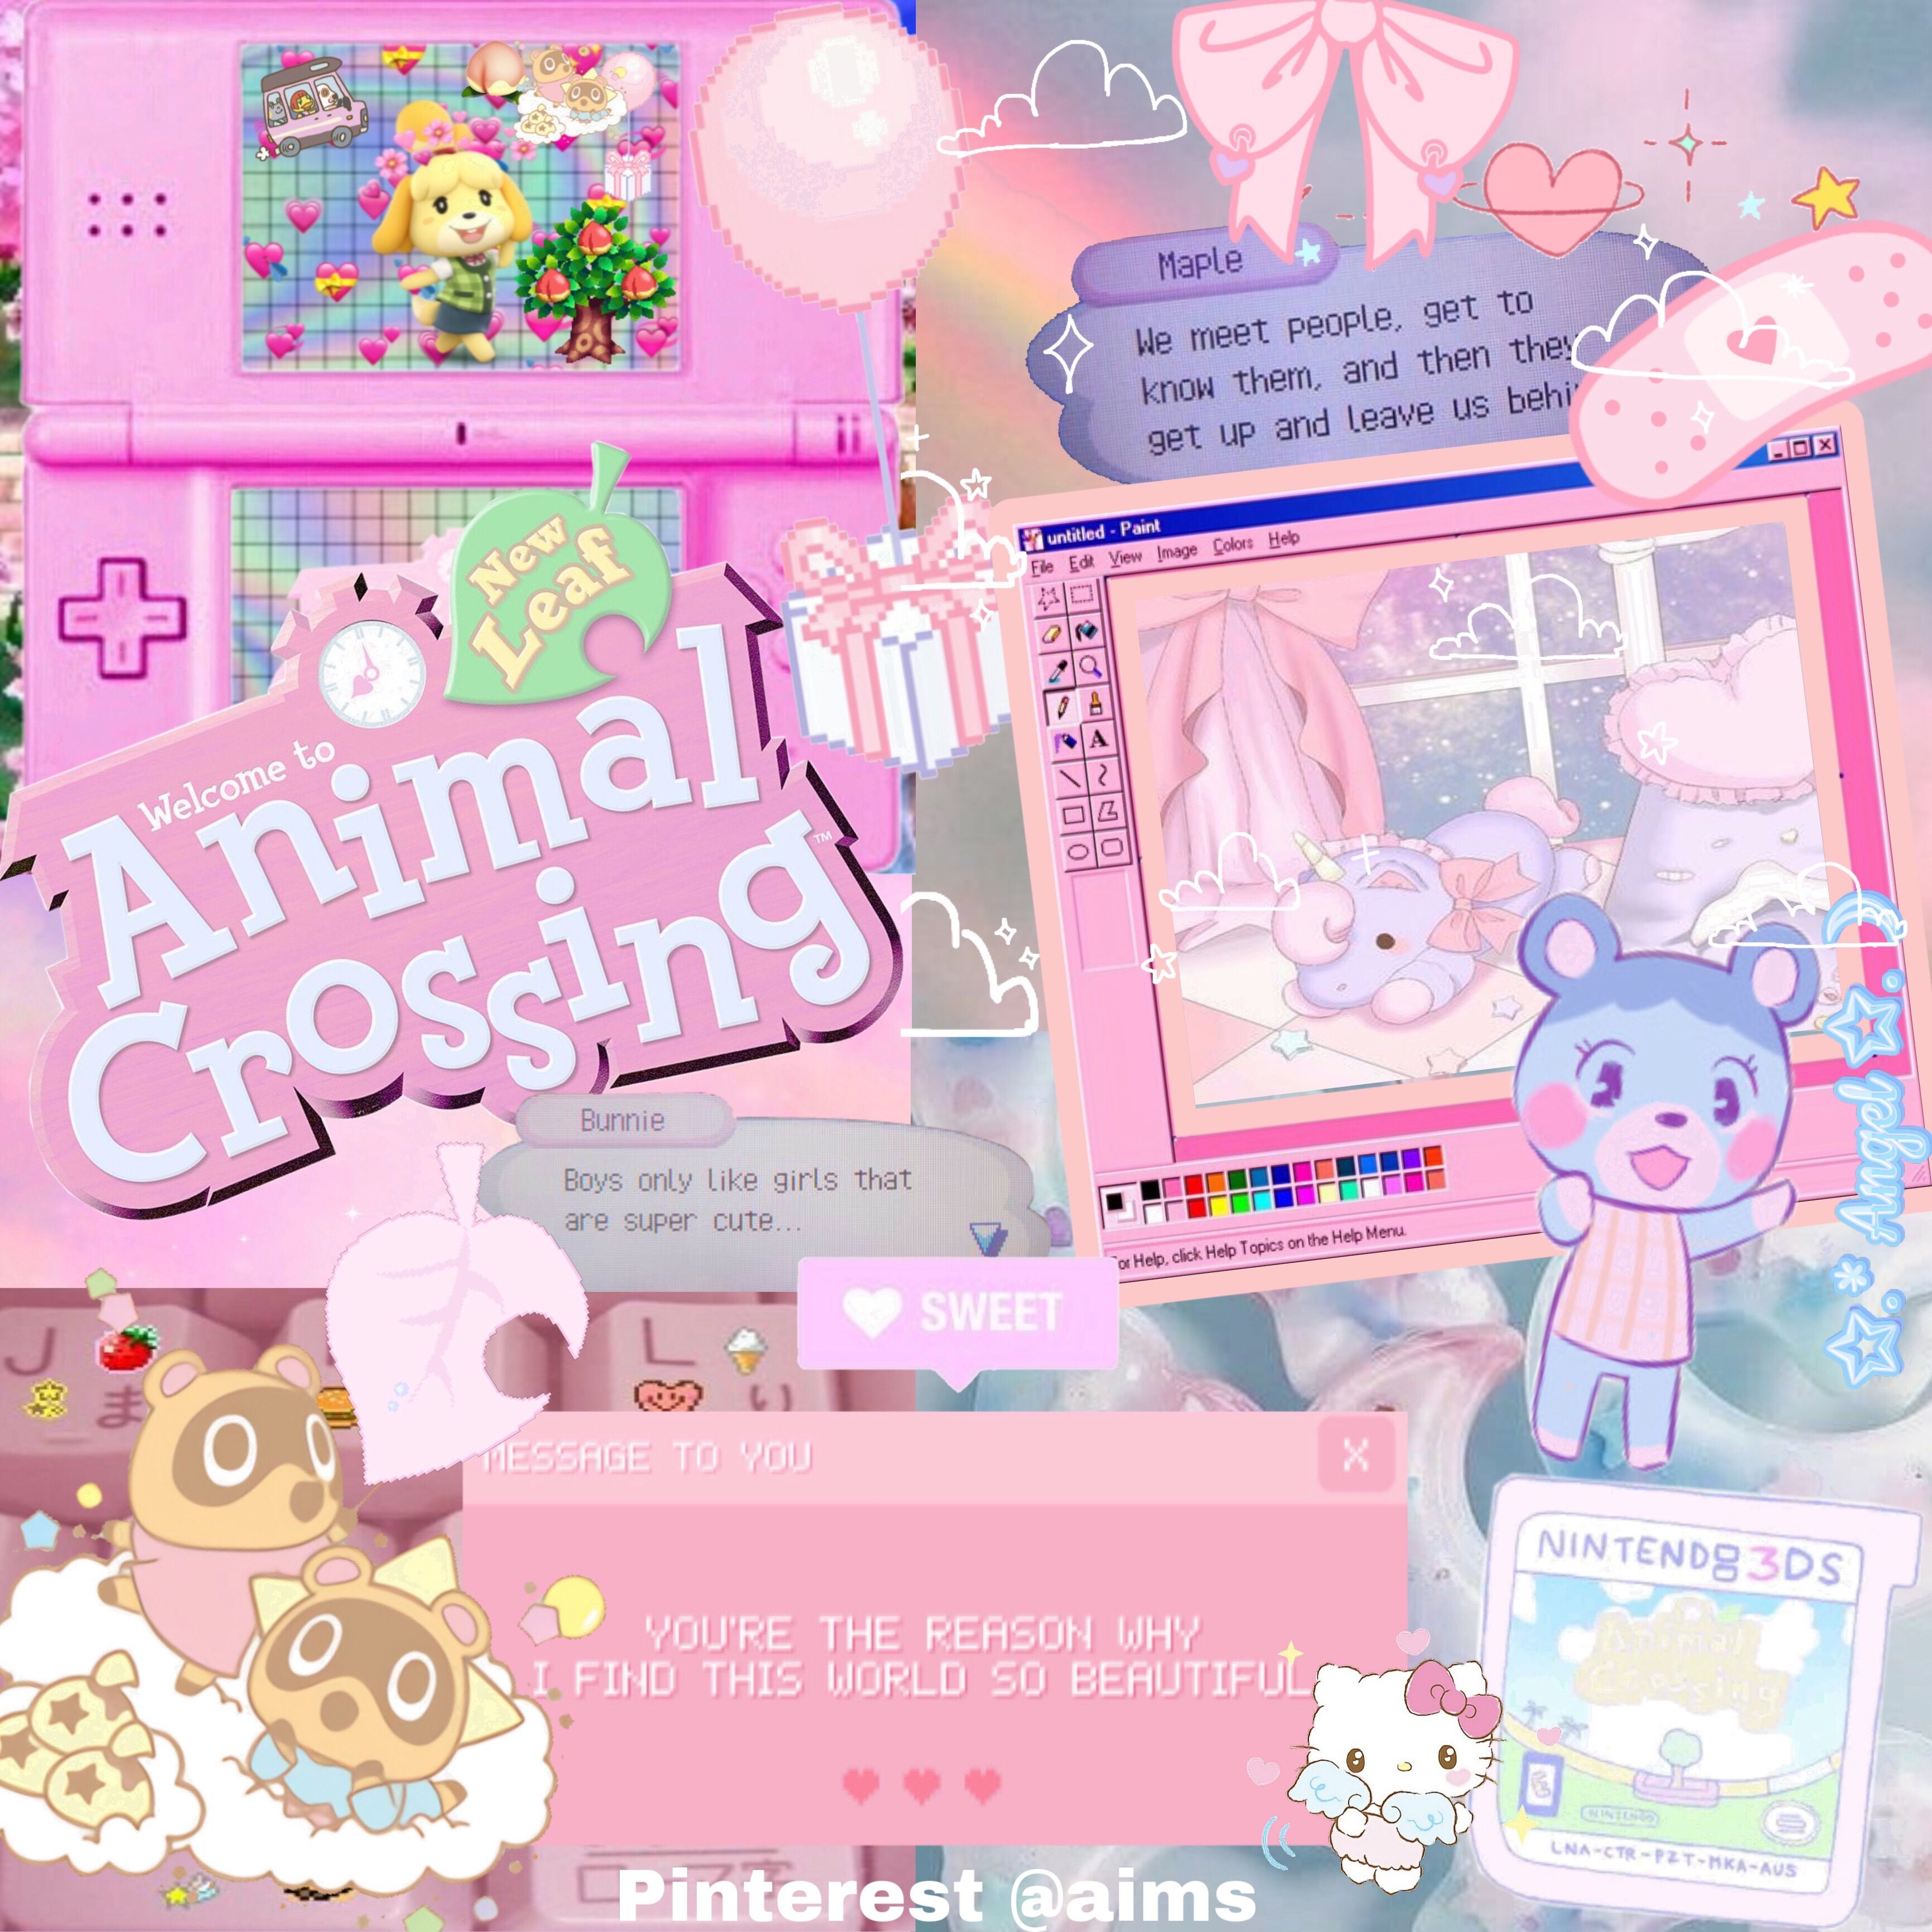 Pin By Mia On Flowers Animal Crossing Animal Crossing Pocket Camp Pink